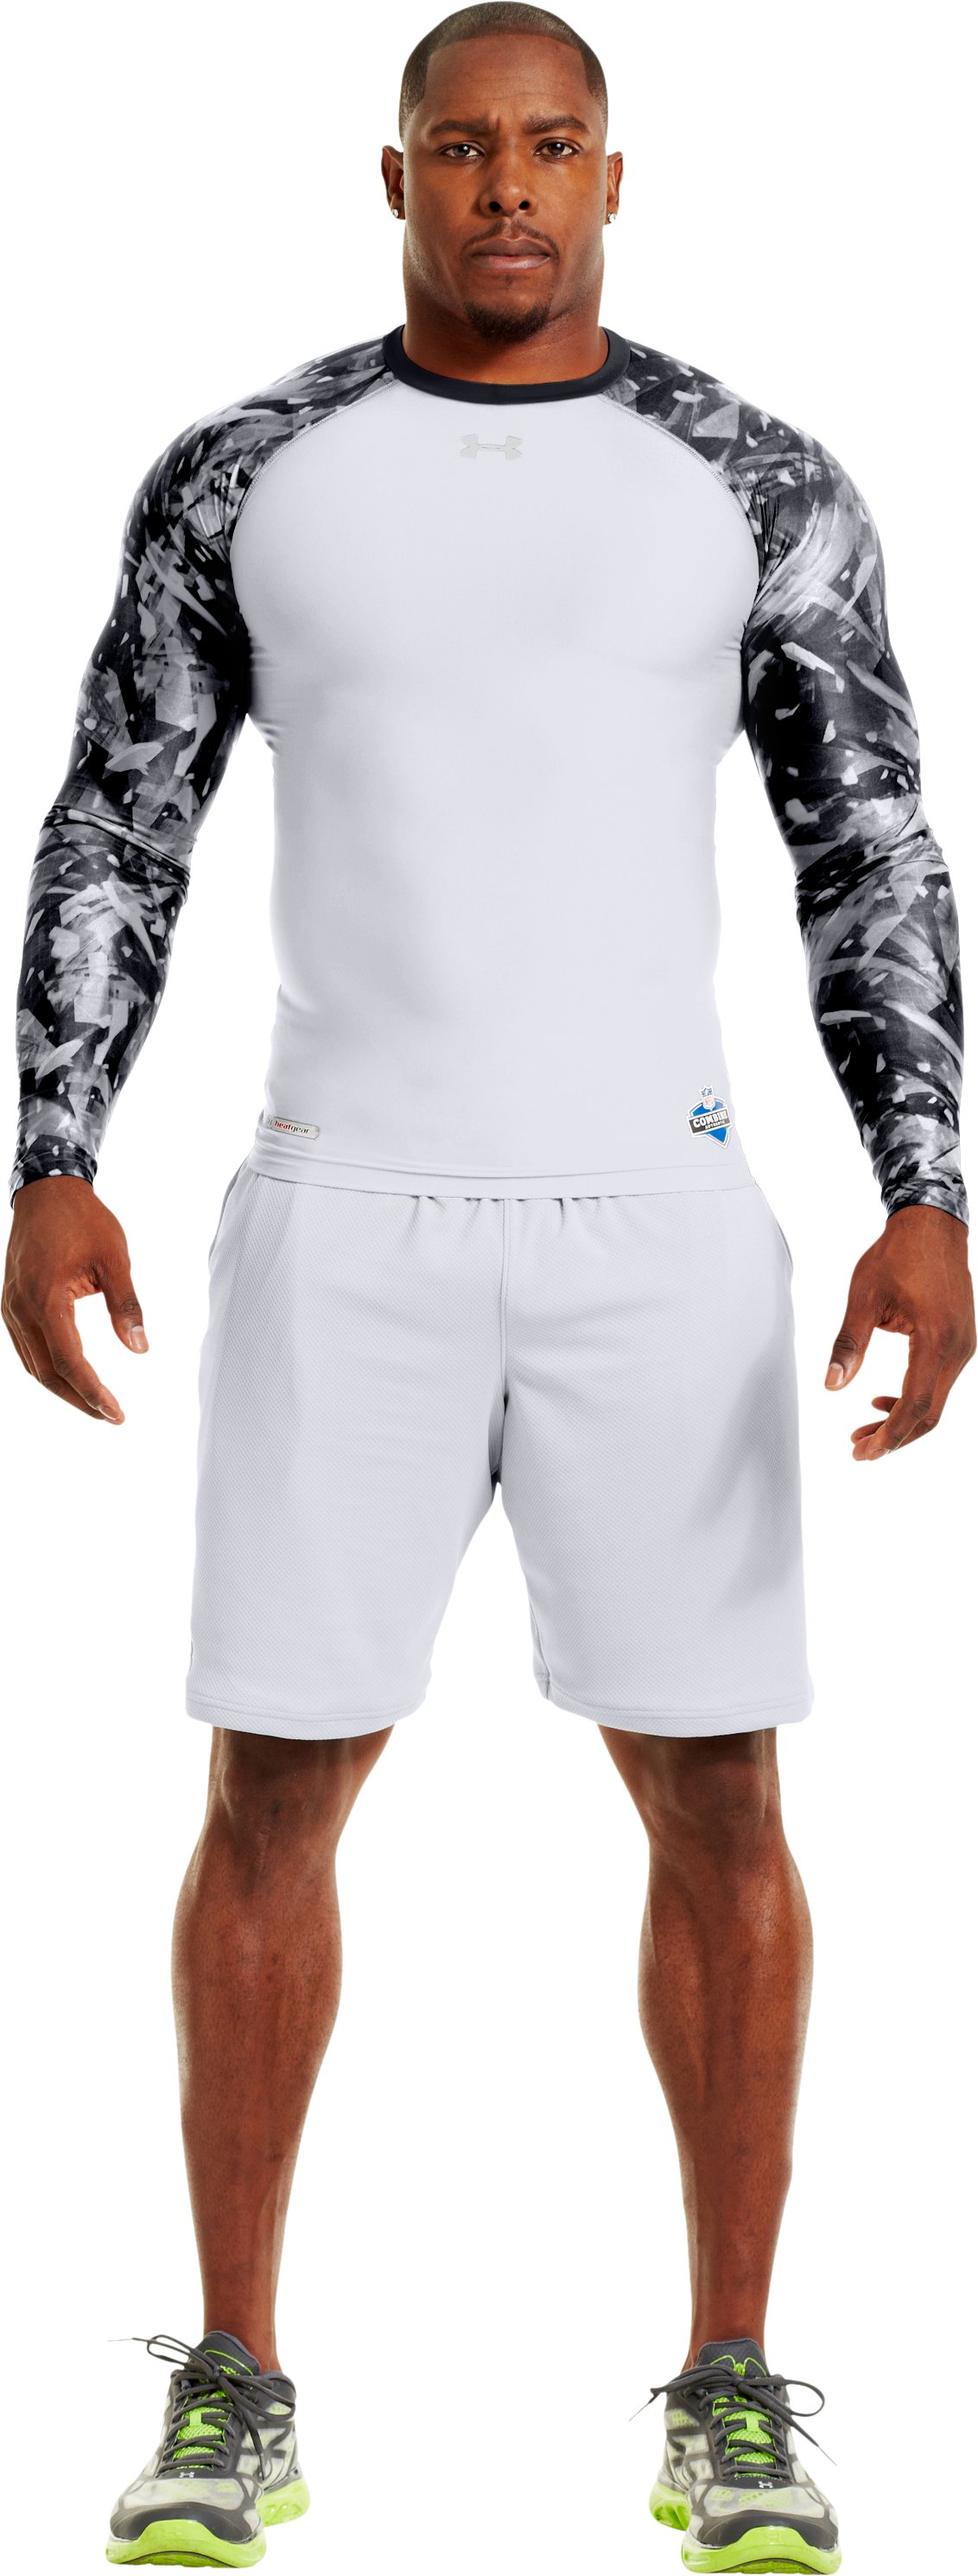 Men's NFL Combine Authentic Compression Long Sleeve, White, Front